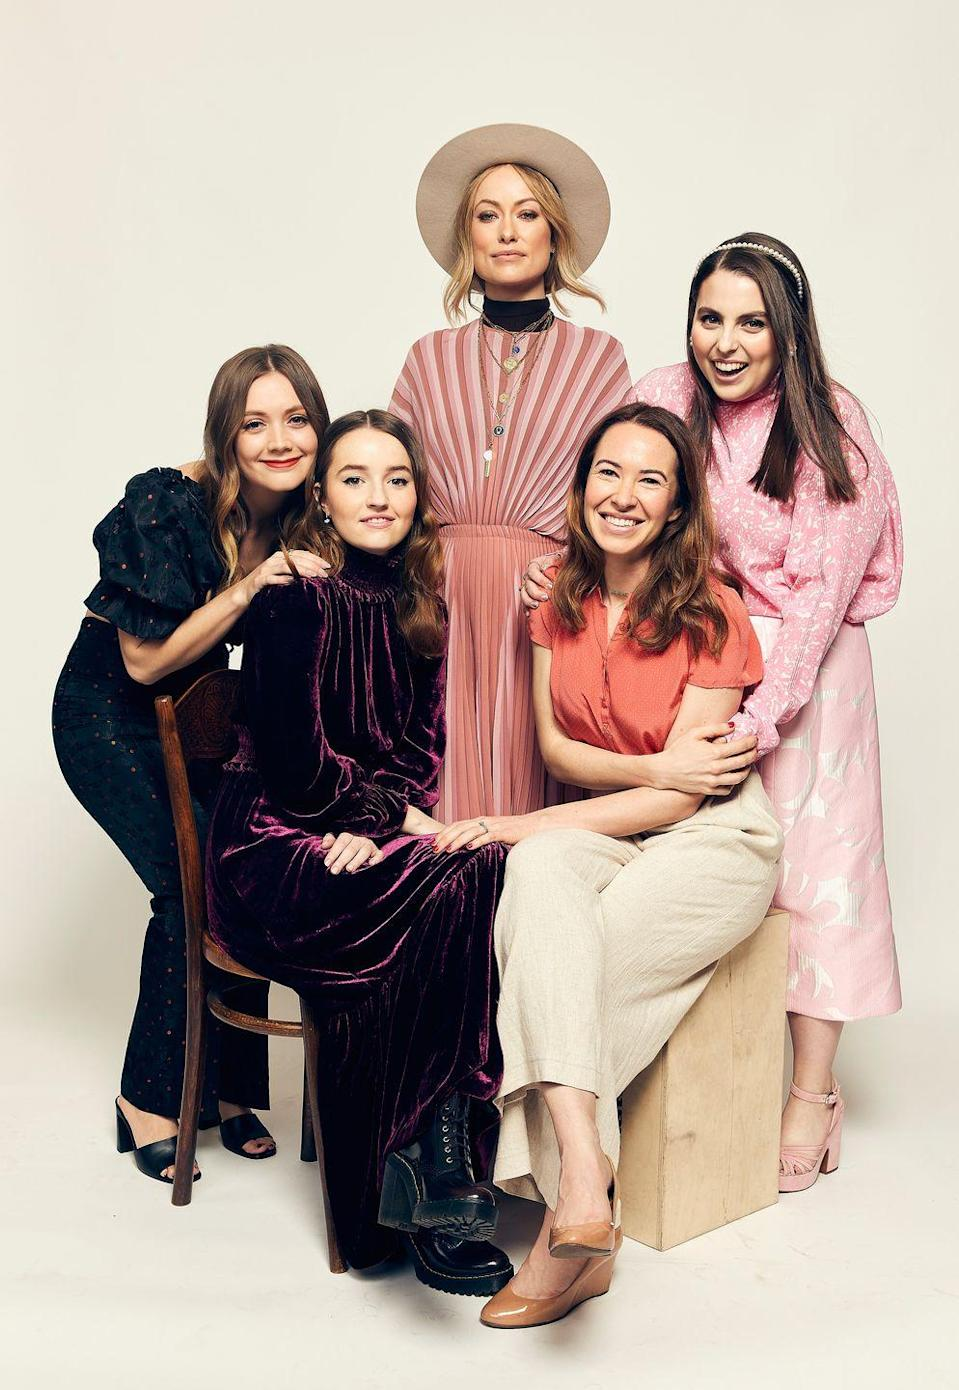 <p>Posing alongside the stars of her directorial-debut film Booksmart (Billie Lourd, Beanie Feldstein and Kaitlyn Dever), Wilde rocks a 1970s-inspired look consisting of a striped salmon-coloured dress with a thick black high-neck and a wide-rimmed hat. </p>